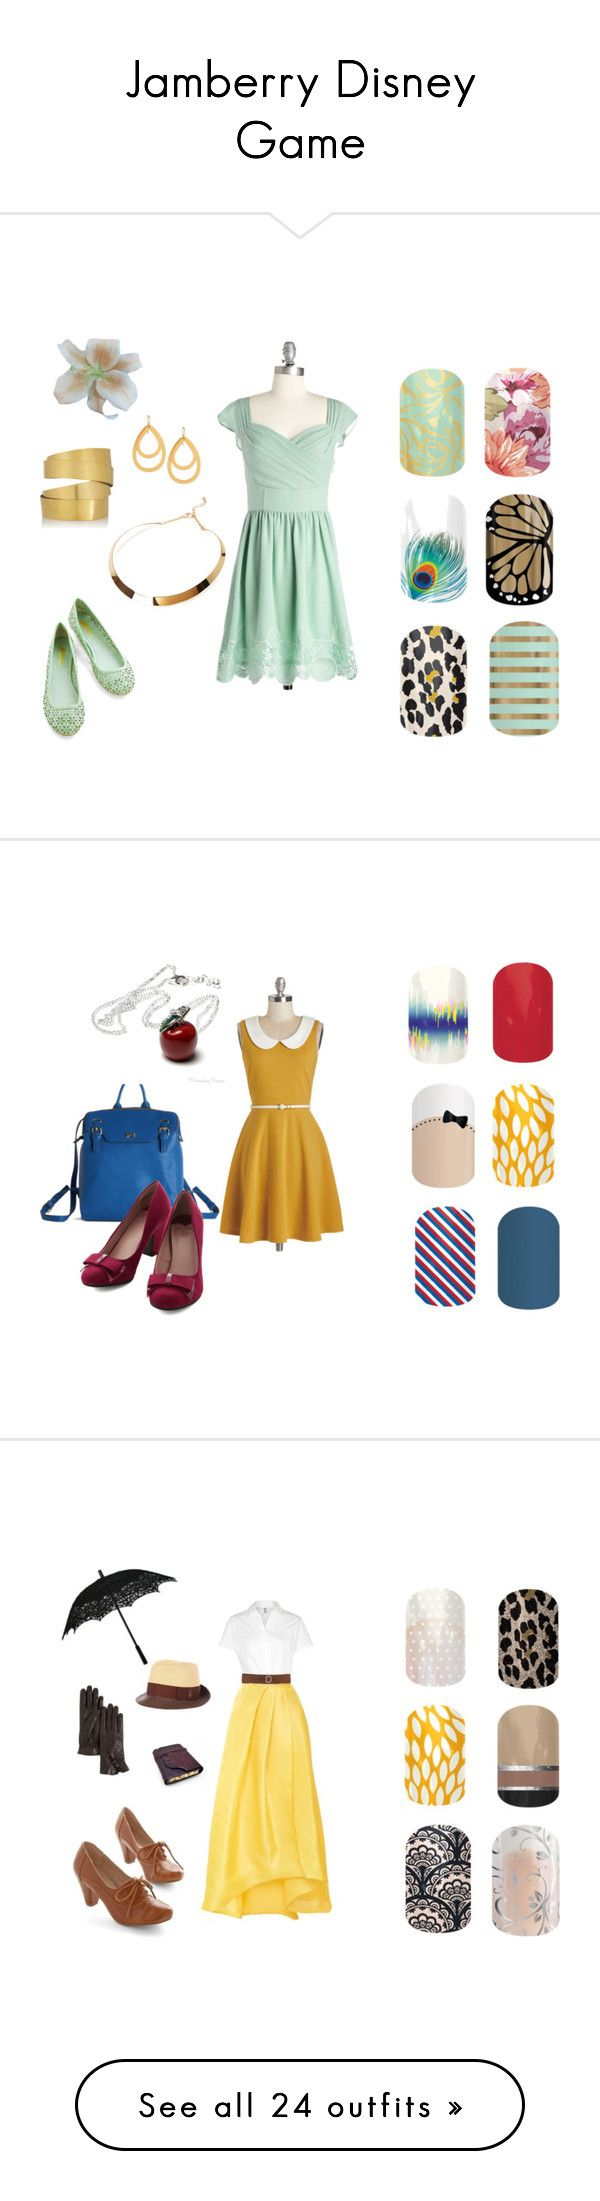 """""""Jamberry Disney Game"""" by beccaboo605 ❤ liked on Polyvore featuring Hervé Van Der Straeten, Forever 21, Stephanie Kantis, Nica, Once Upon a Time, plus size dresses, American Apparel, Monique Lhuillier, BKE and Chelsea Crew"""